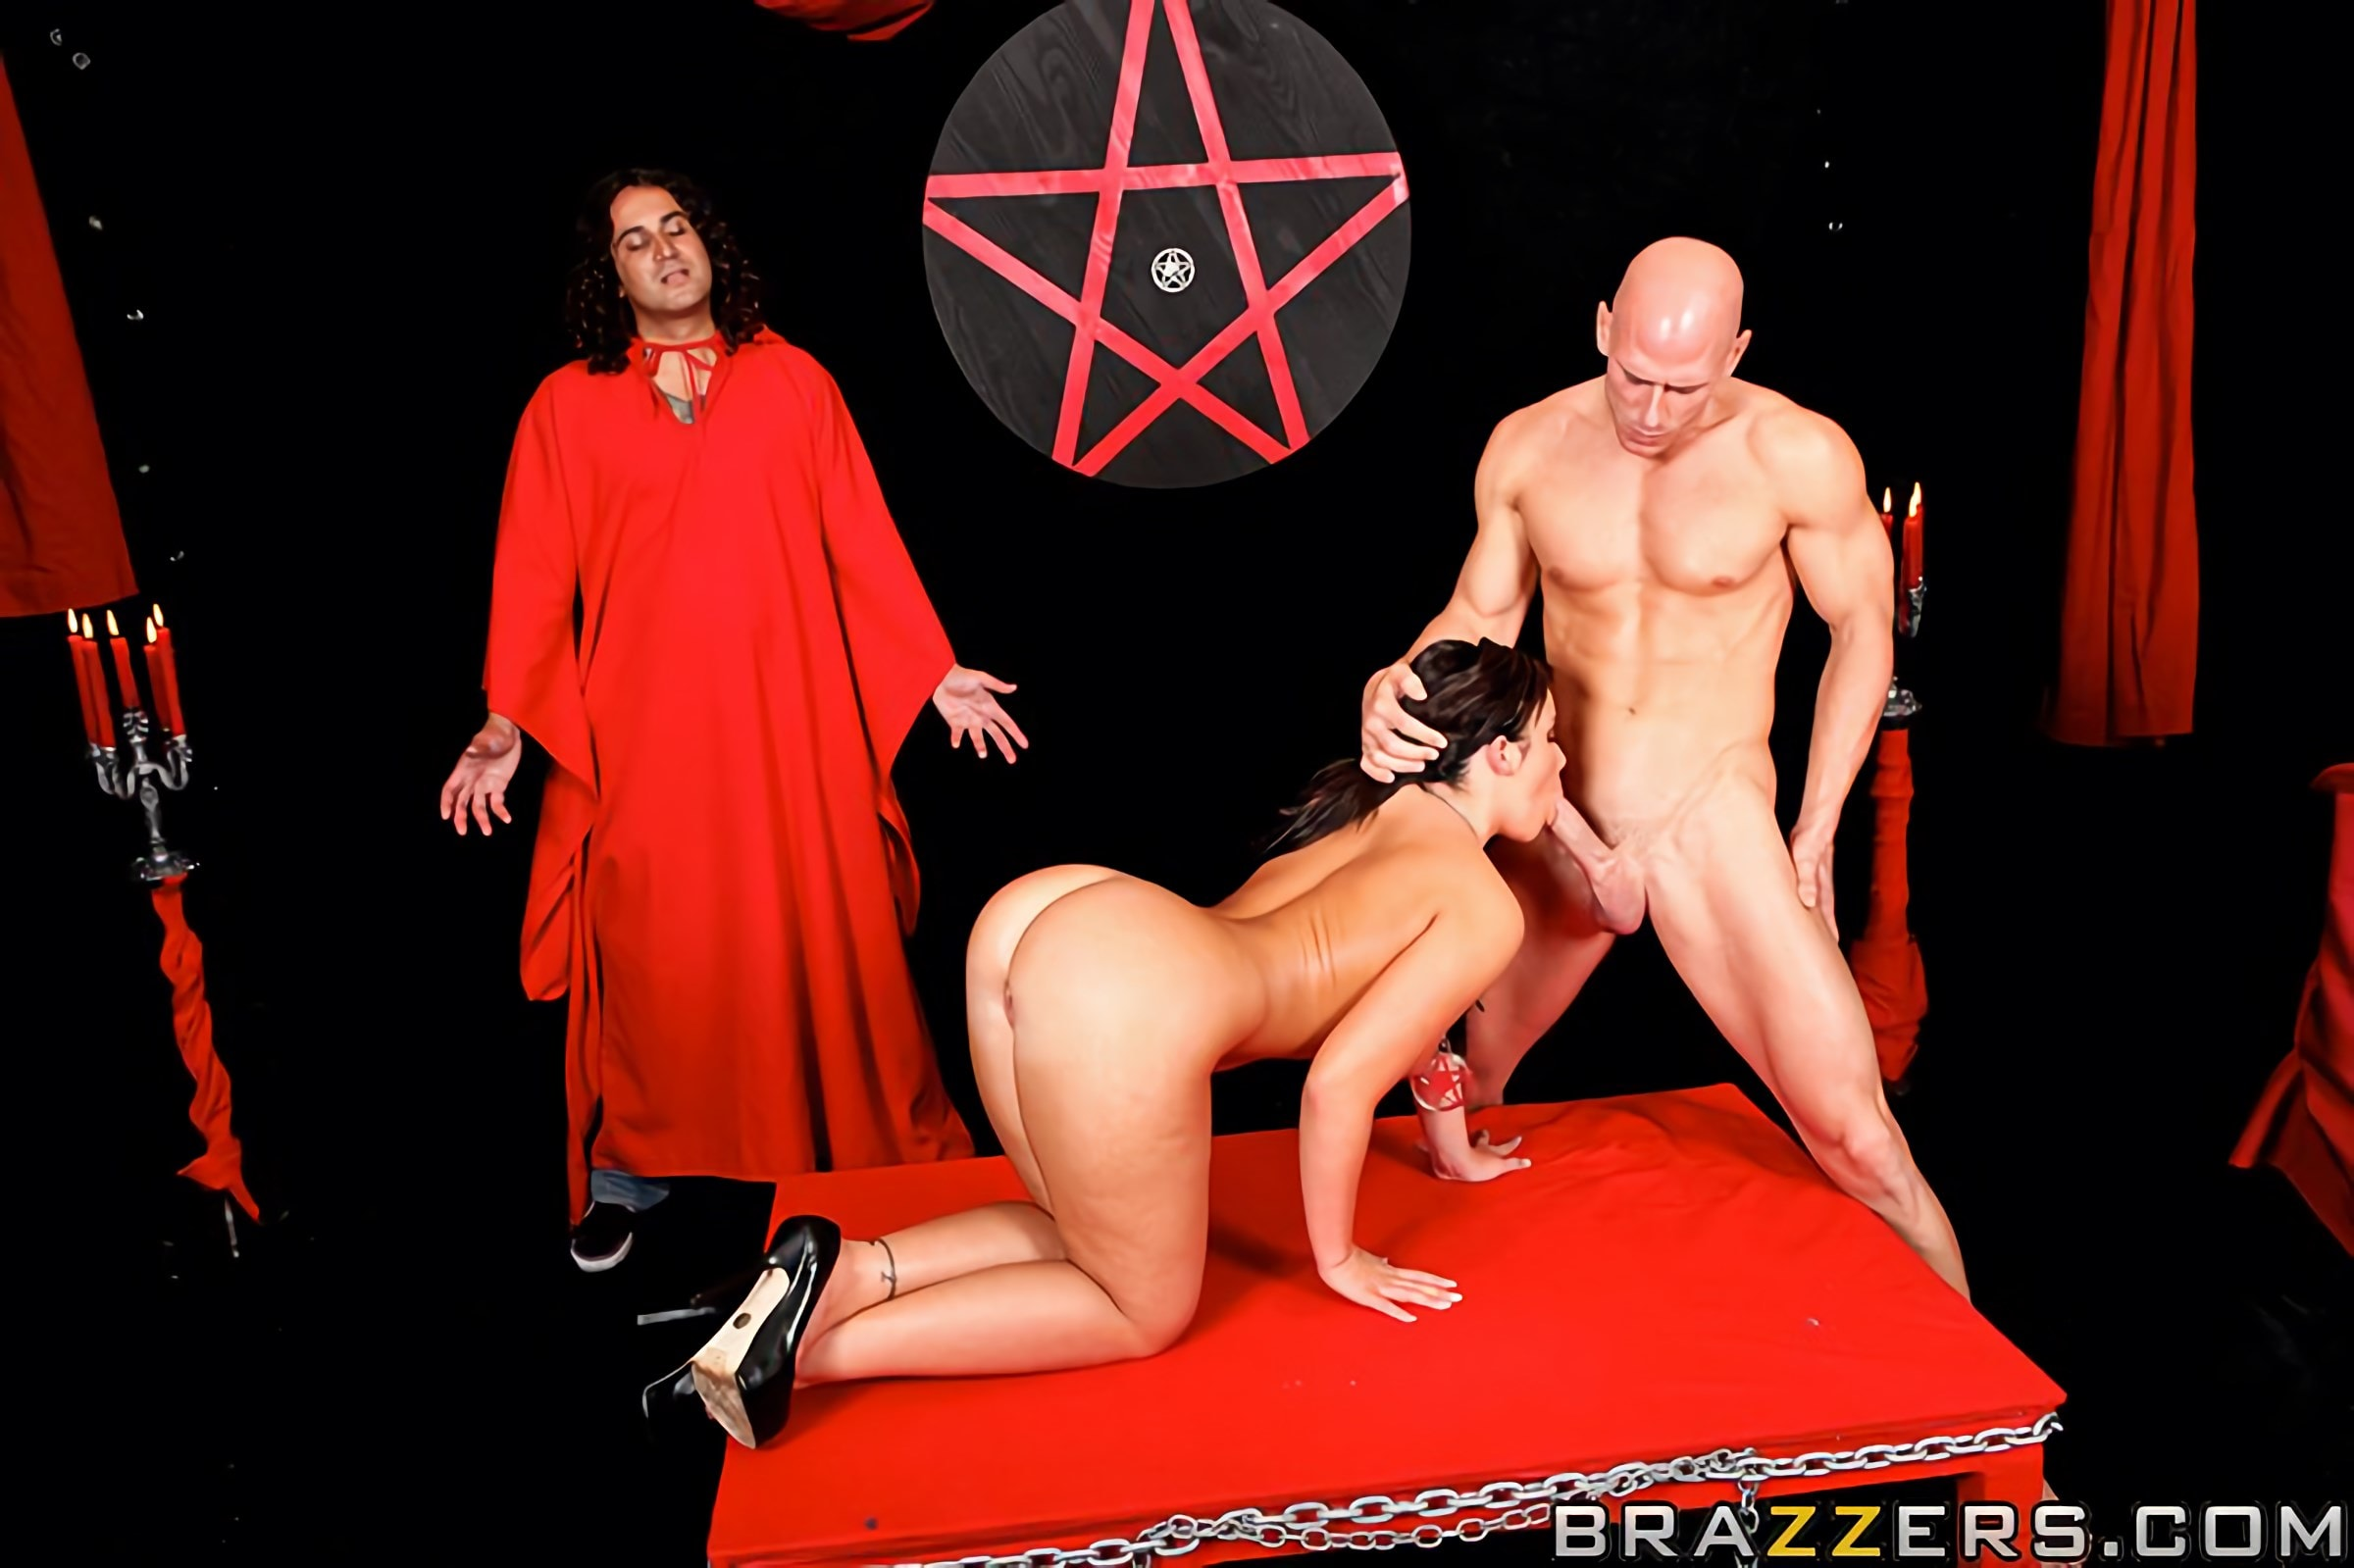 satanic-sex-free-movies-lesbian-campgrounds-in-florida